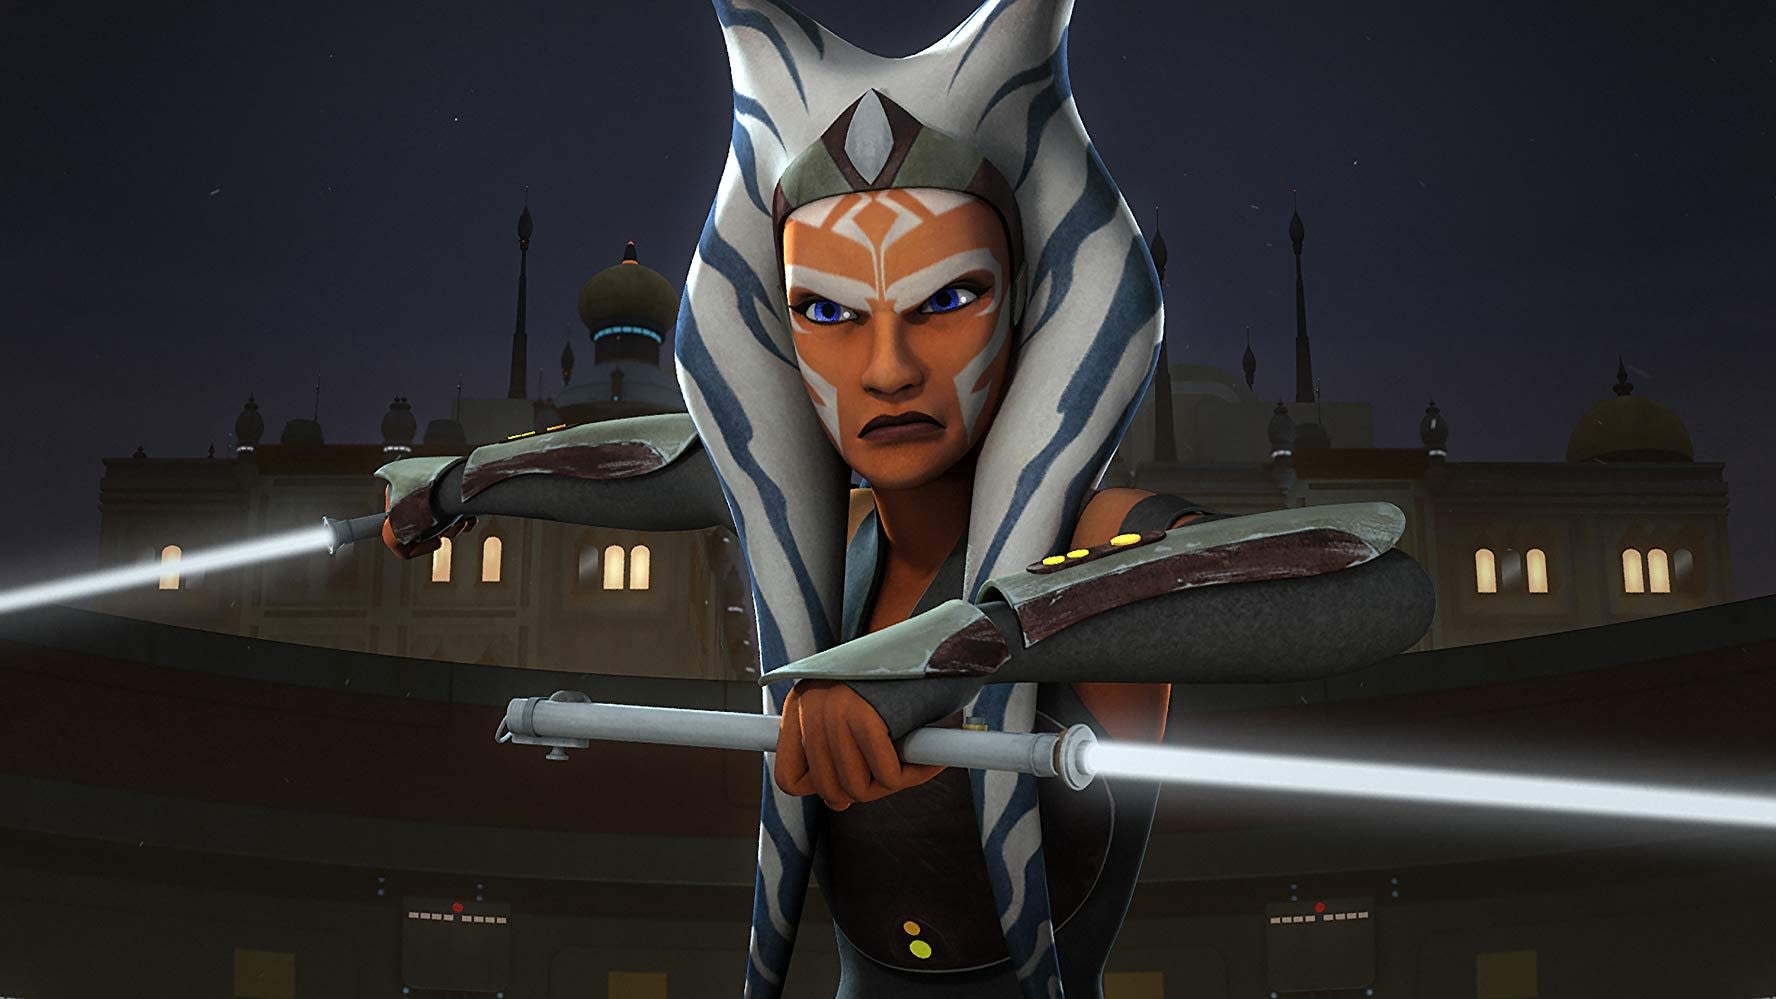 The hottest Star Wars collectible is Ahsoka Tano